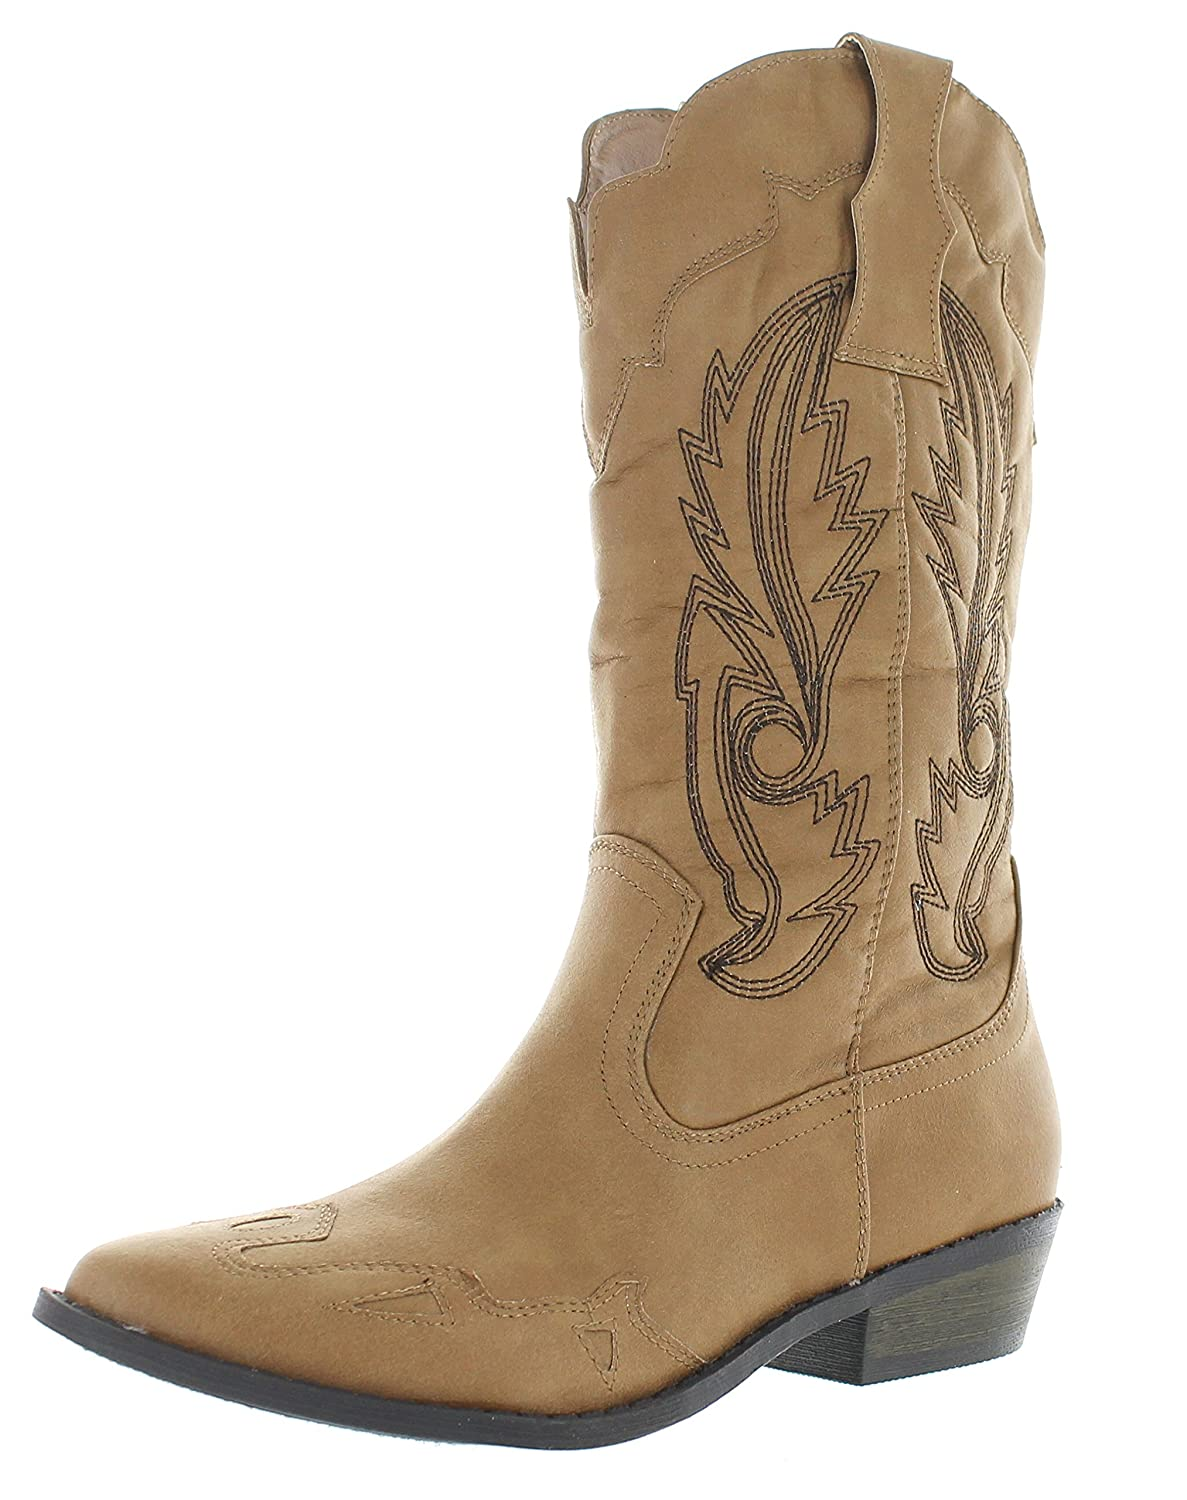 Coconuts by Matisse Women's Cimmaron Boot B01NAPVG1S 6.5 B(M) US|Tan